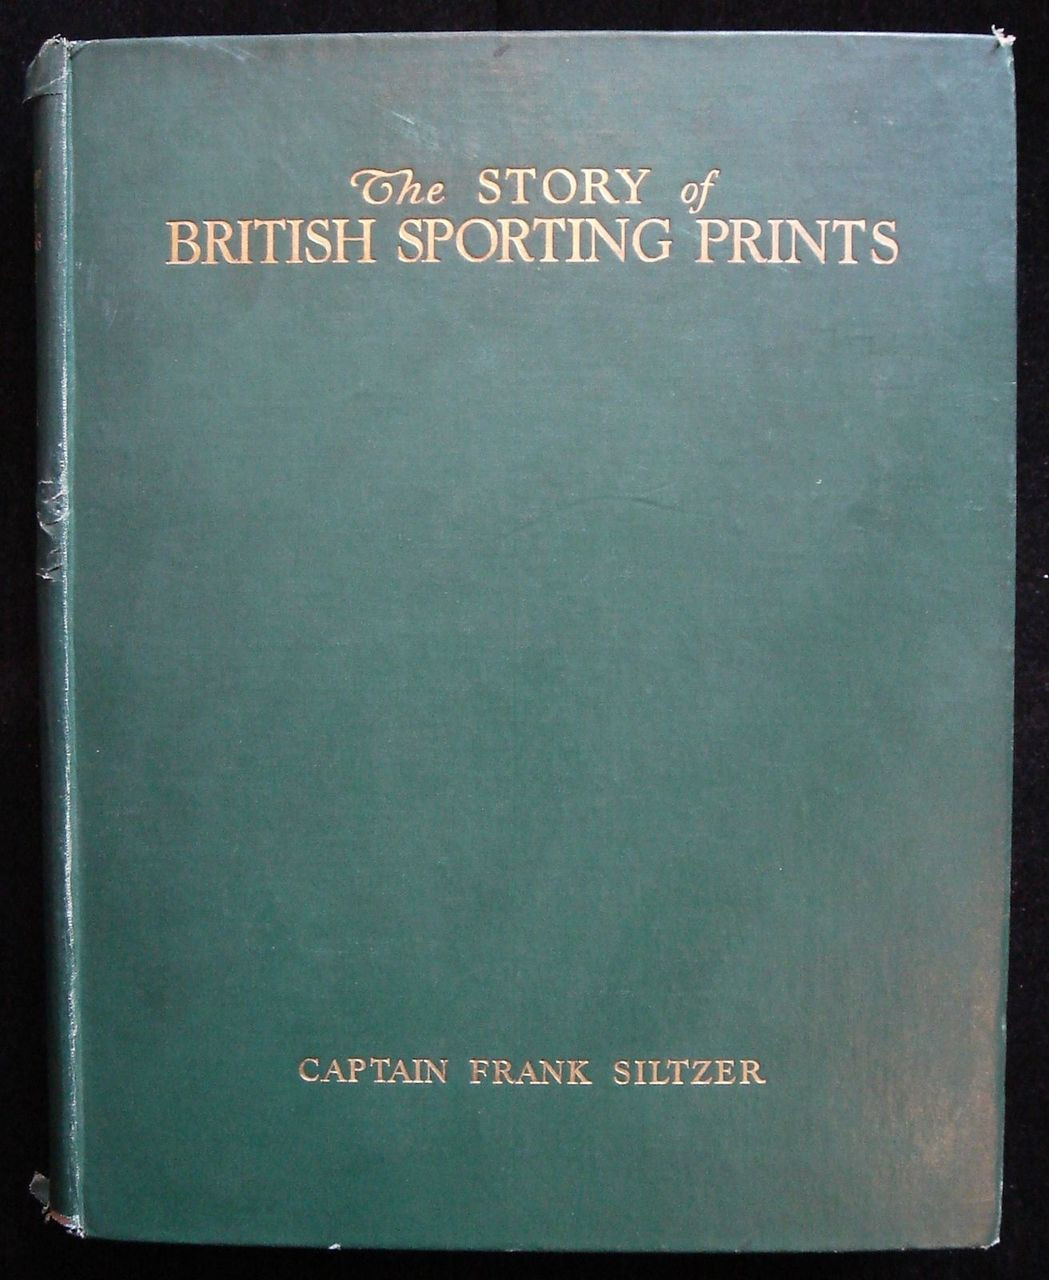 THE STORY OF BRITISH SPORTING PRINTS, by Frank Siltzer - 1929